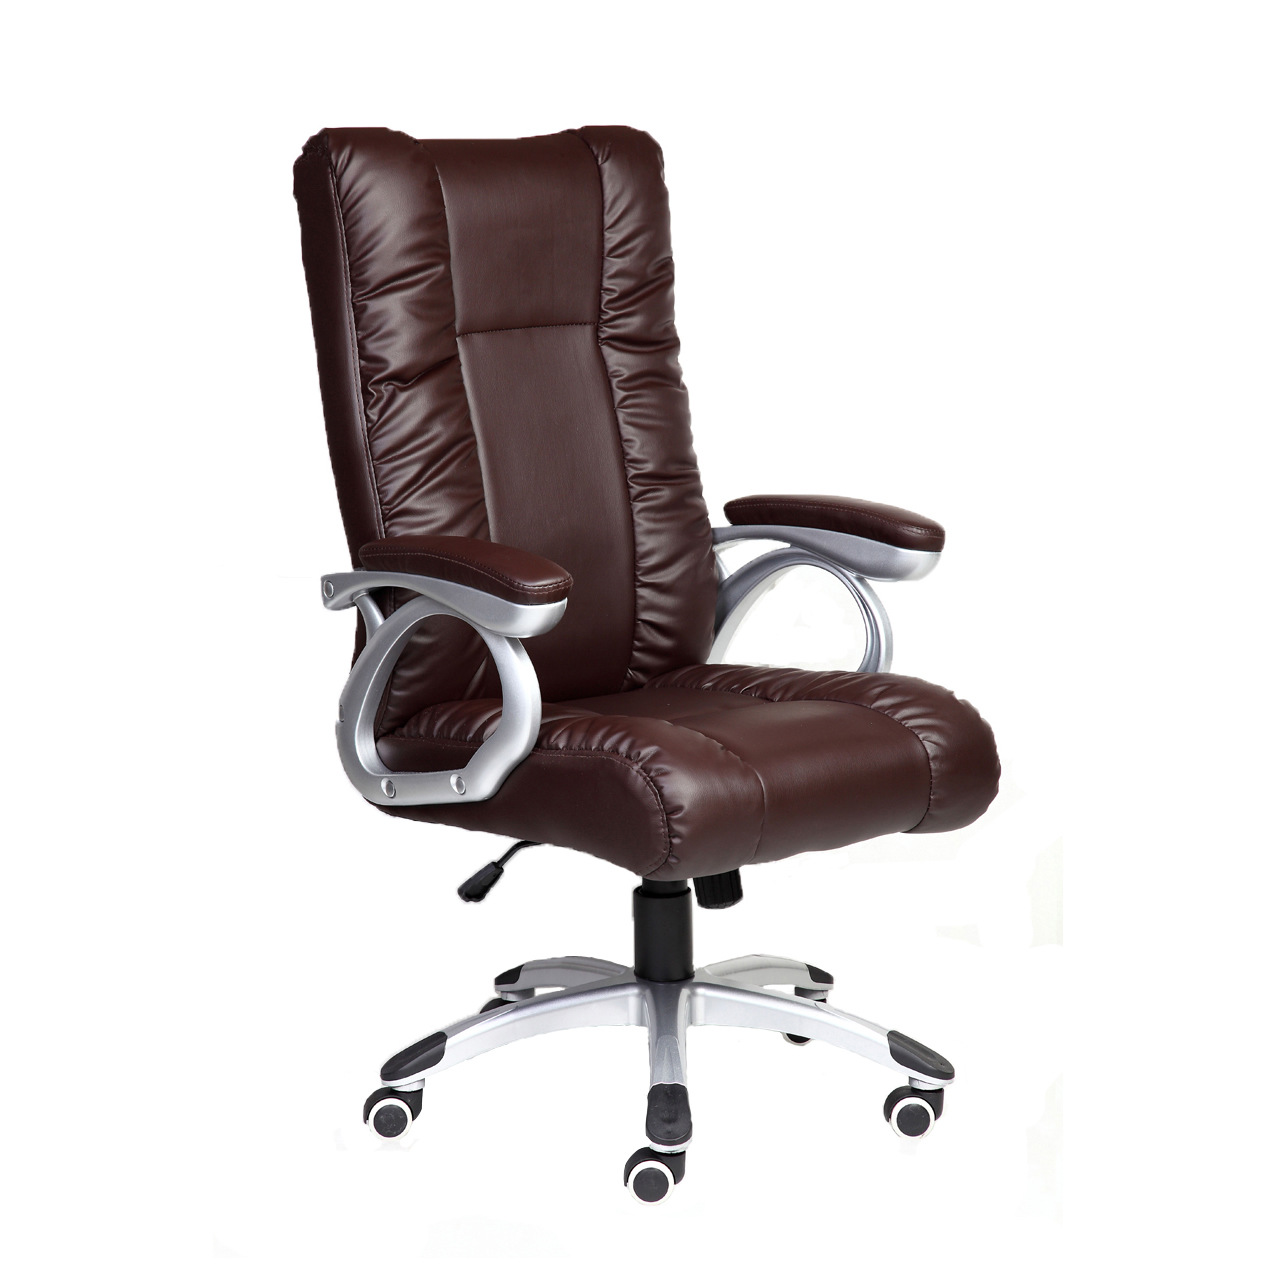 High Quality Ergonomic Executive Office Chair Lifting Swivel Gaming Computer Chair cadeira bureaustoel ergonomisch sedie uffico 240337 ergonomic chair quality pu wheel household office chair computer chair 3d thick cushion high breathable mesh